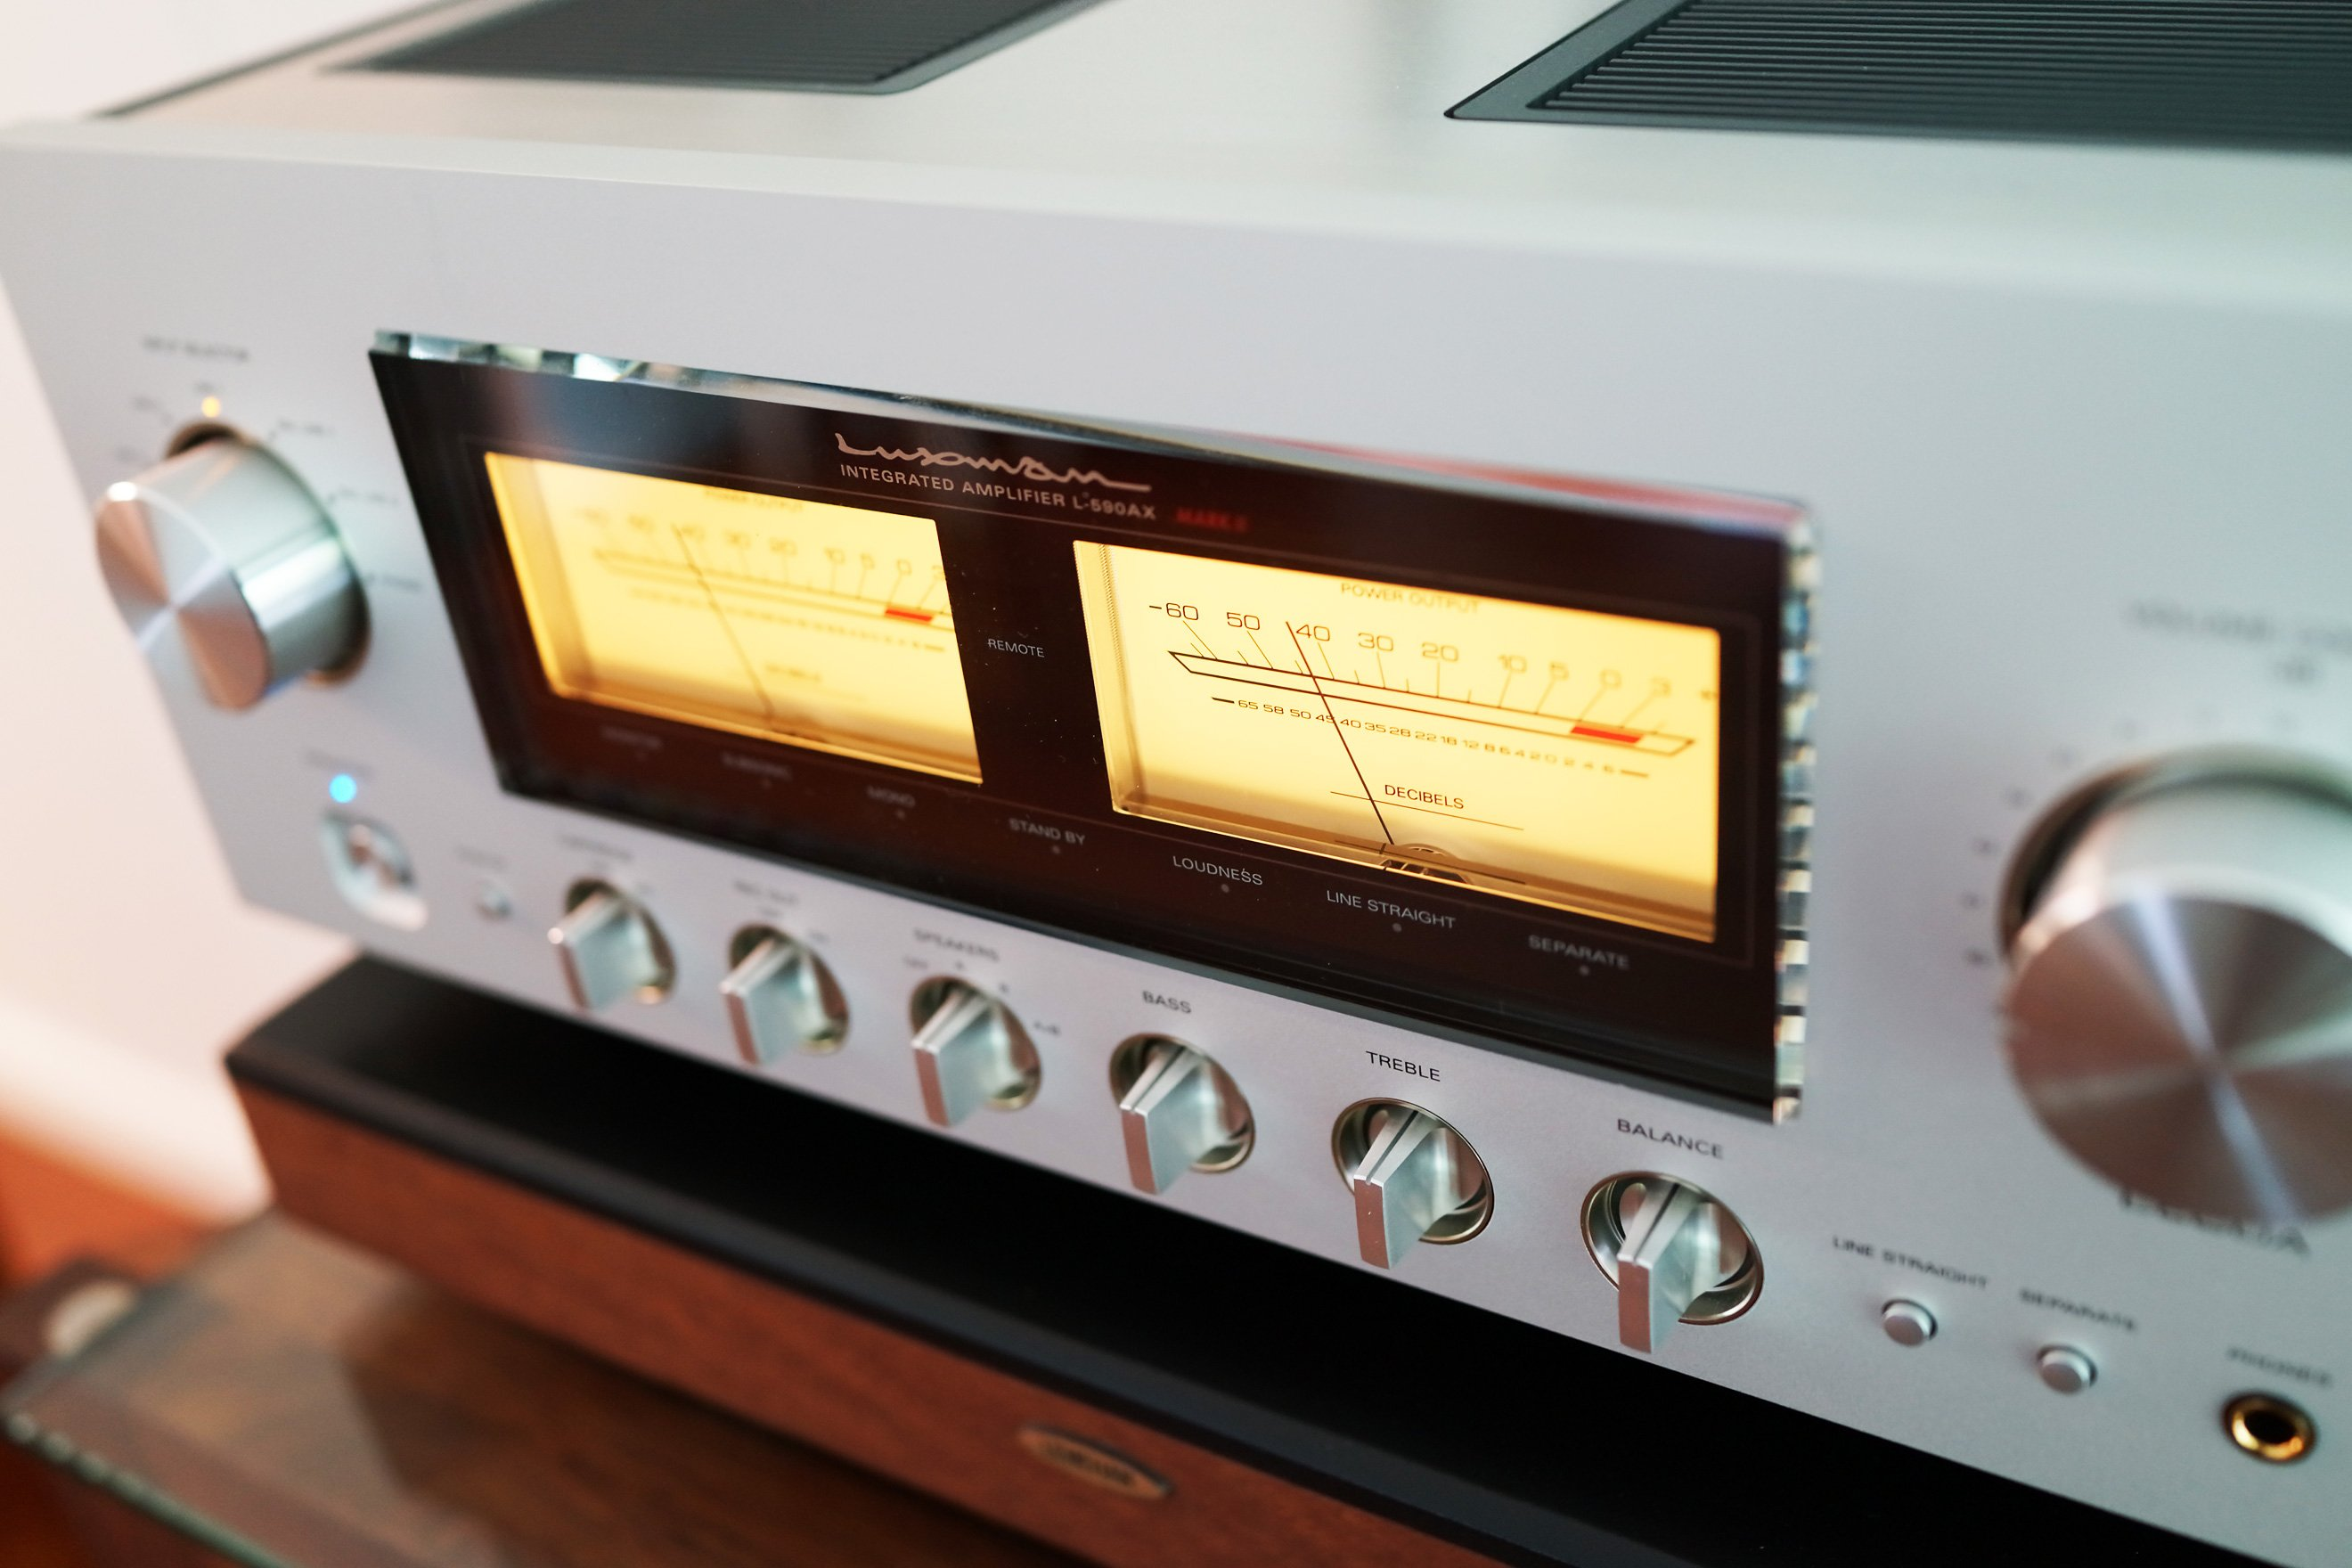 SOLD: FS: Luxman 590AXII 30wpc Class A Int Amp - 6 months old